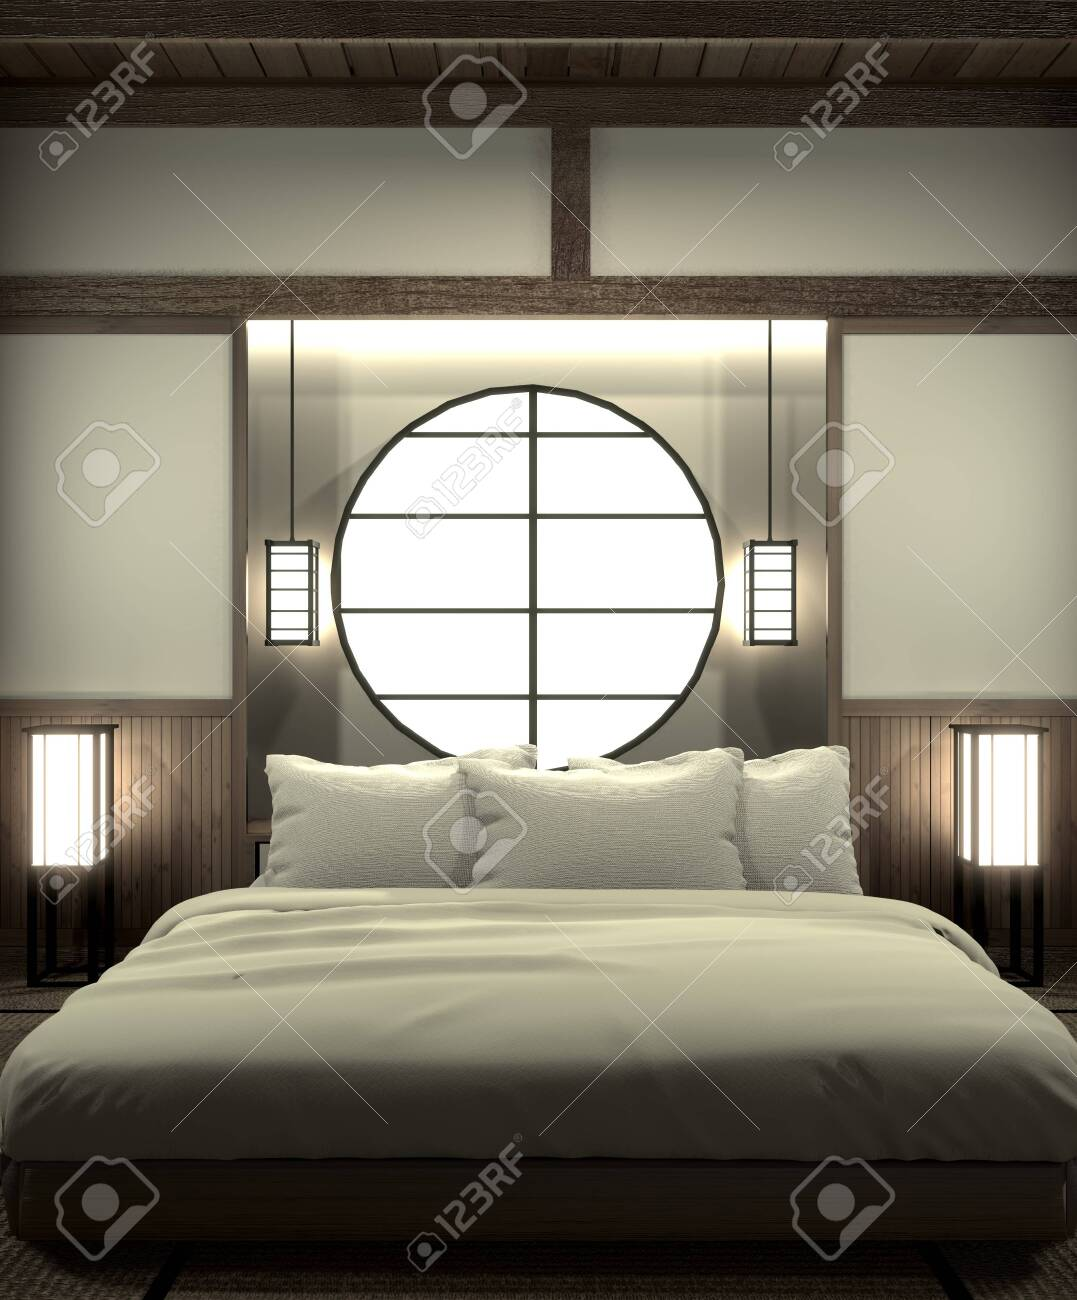 Bedroom Modern Zen Interior Design With Decoration Japanese Style 3d Stock Photo Picture And Royalty Free Image Image 127103694